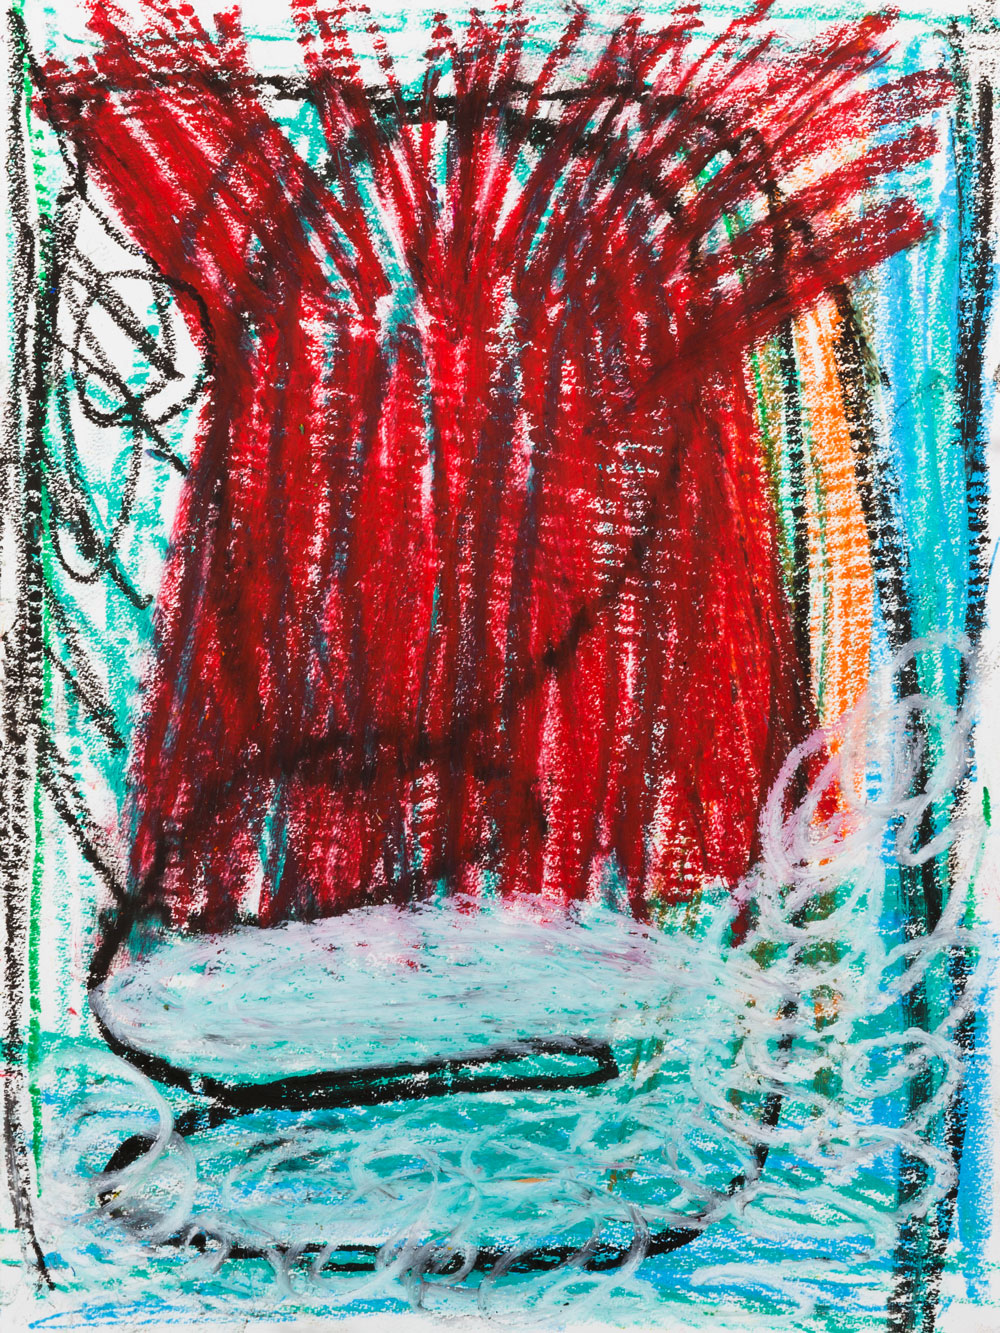 Bonfire  , oil pastel on paper, 17x14 in. ©Denise Gale 2016